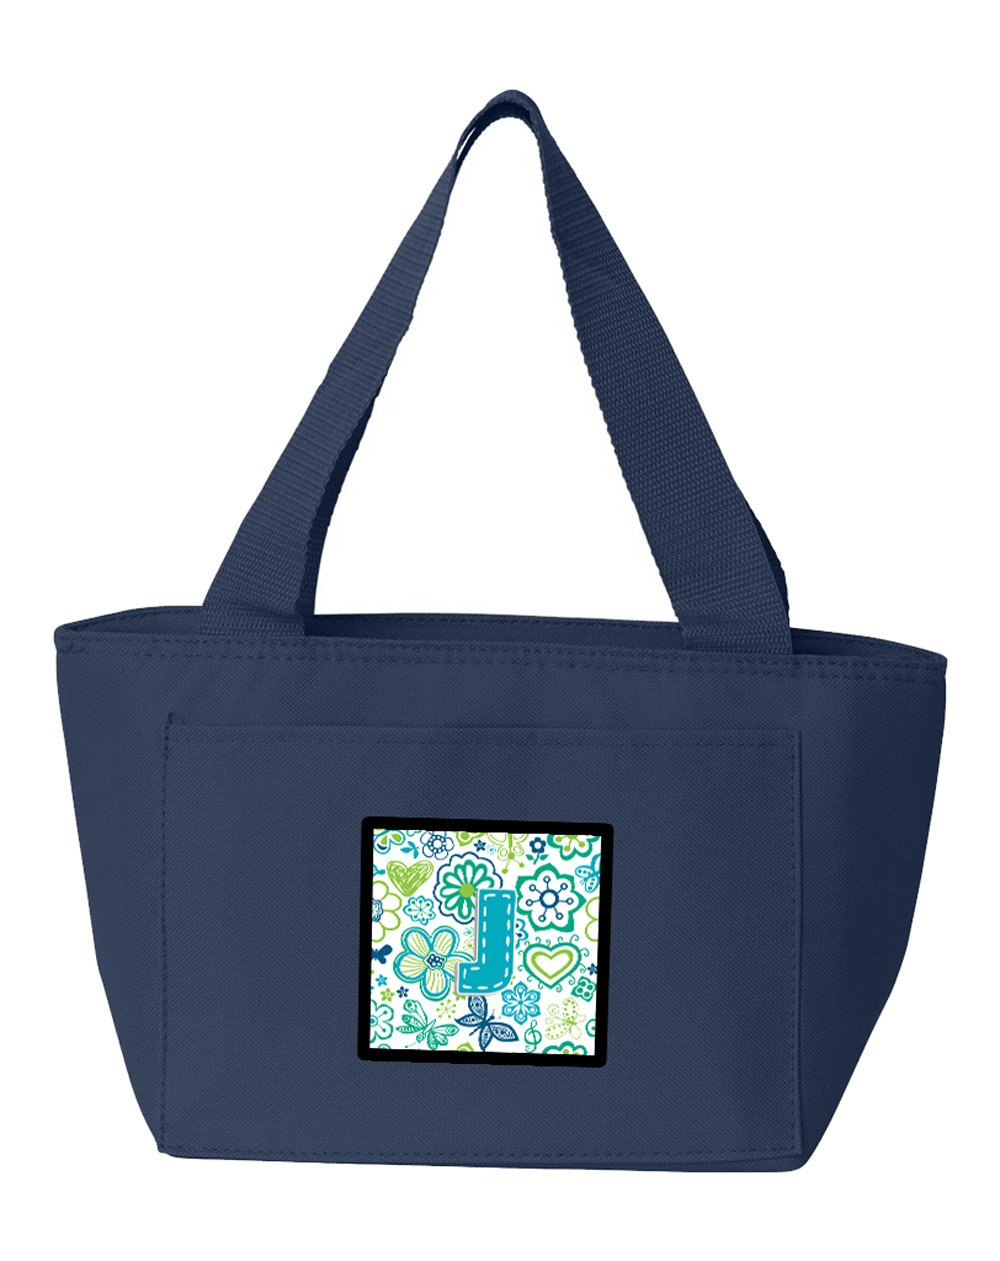 Letter J Flowers and Butterflies Teal Blue Lunch Bag CJ2006-JNA-8808 by Caroline's Treasures